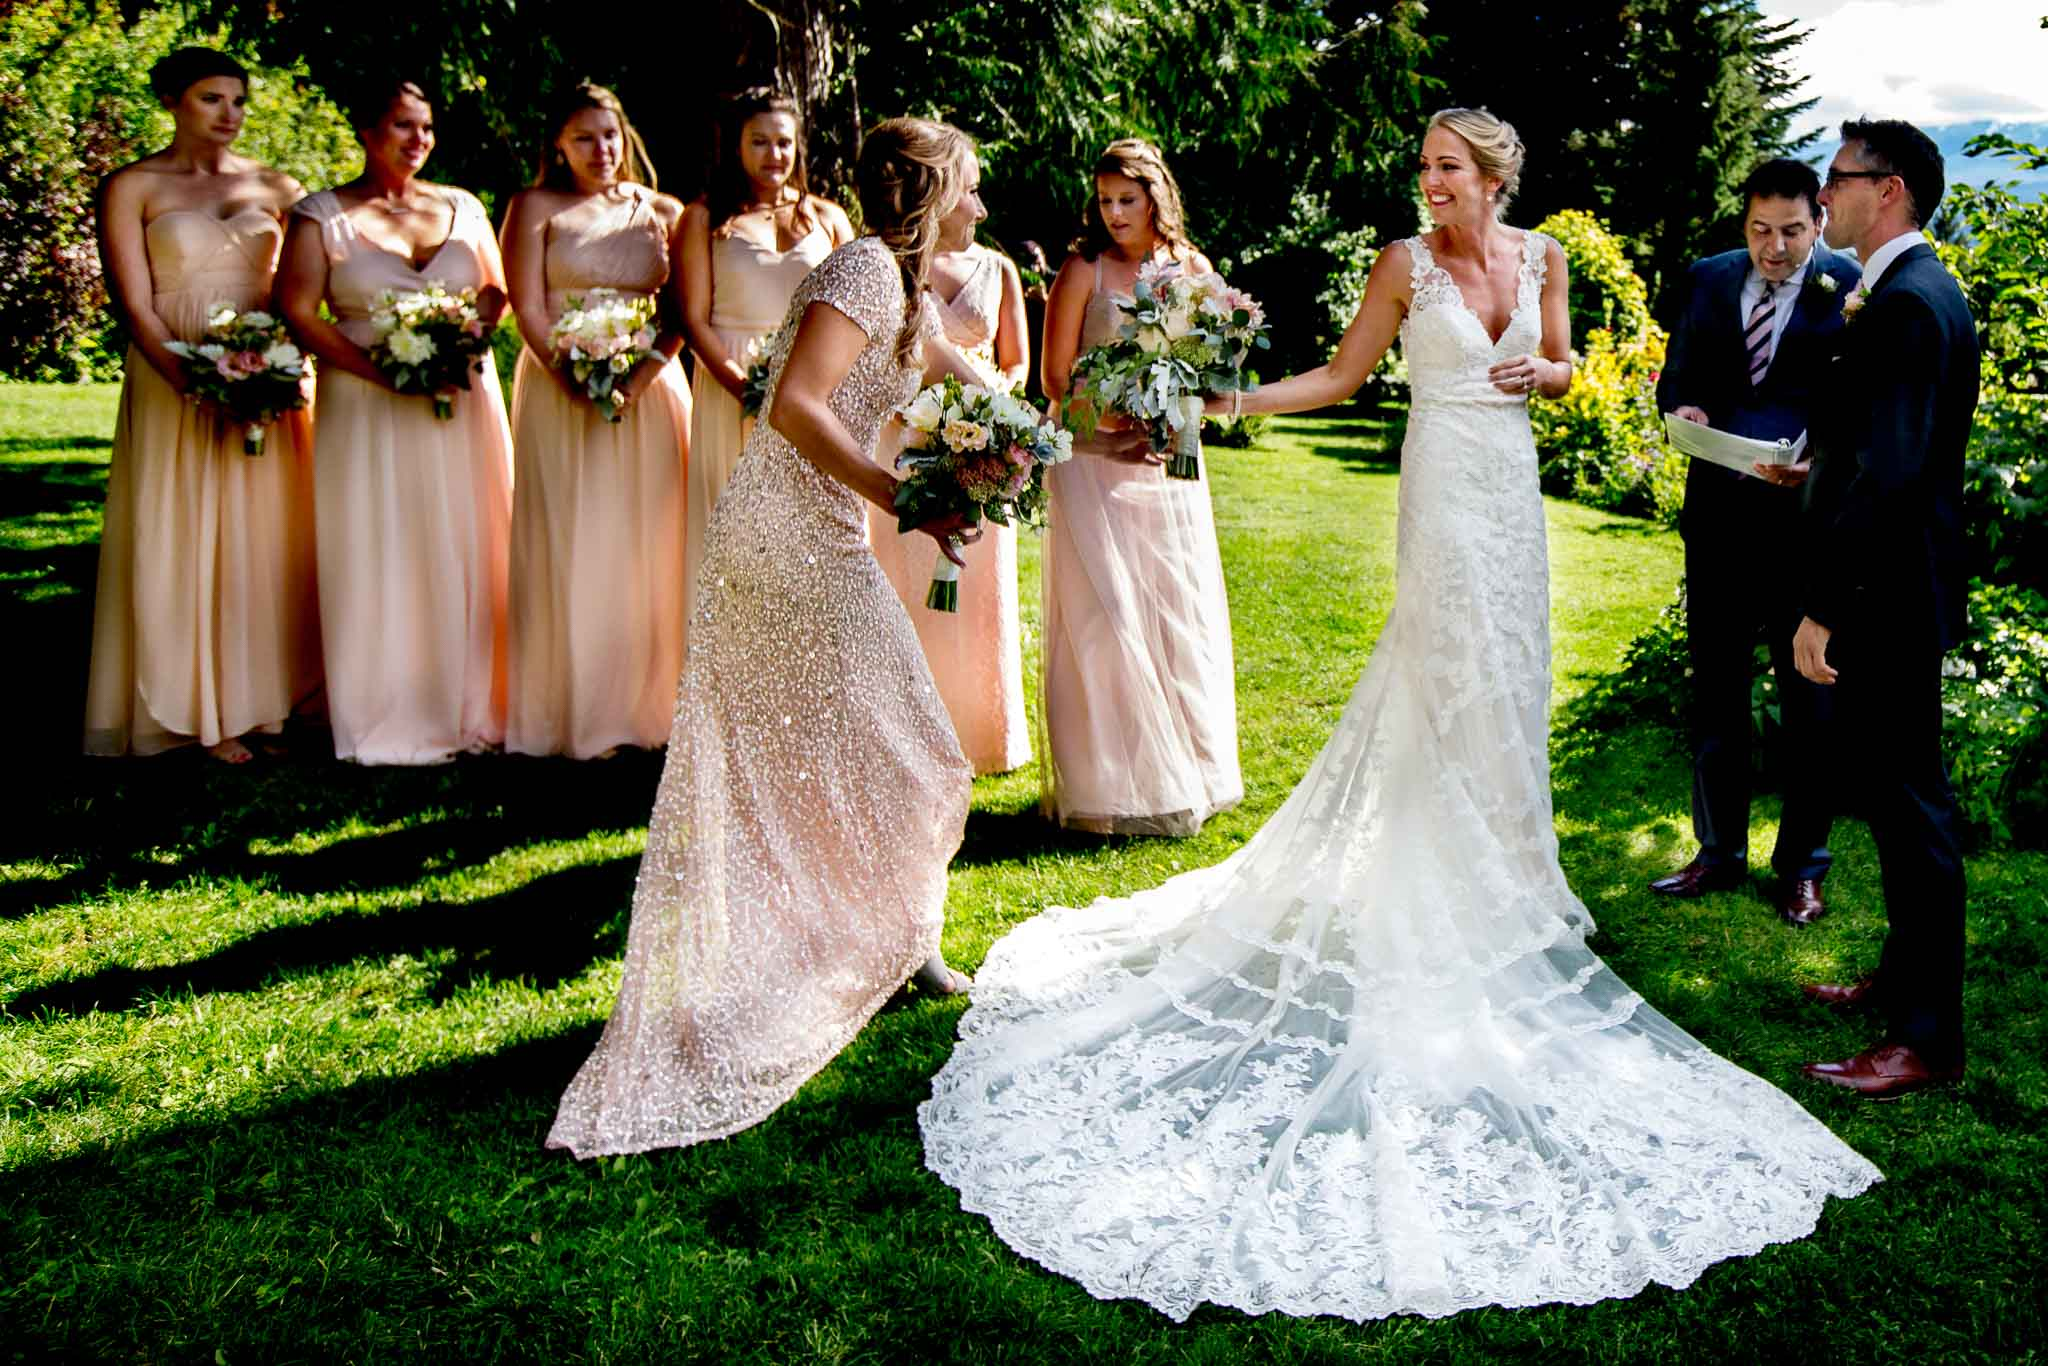 Bride and bridesmaids in wedding ceremony at Mt Hood Organic Farms